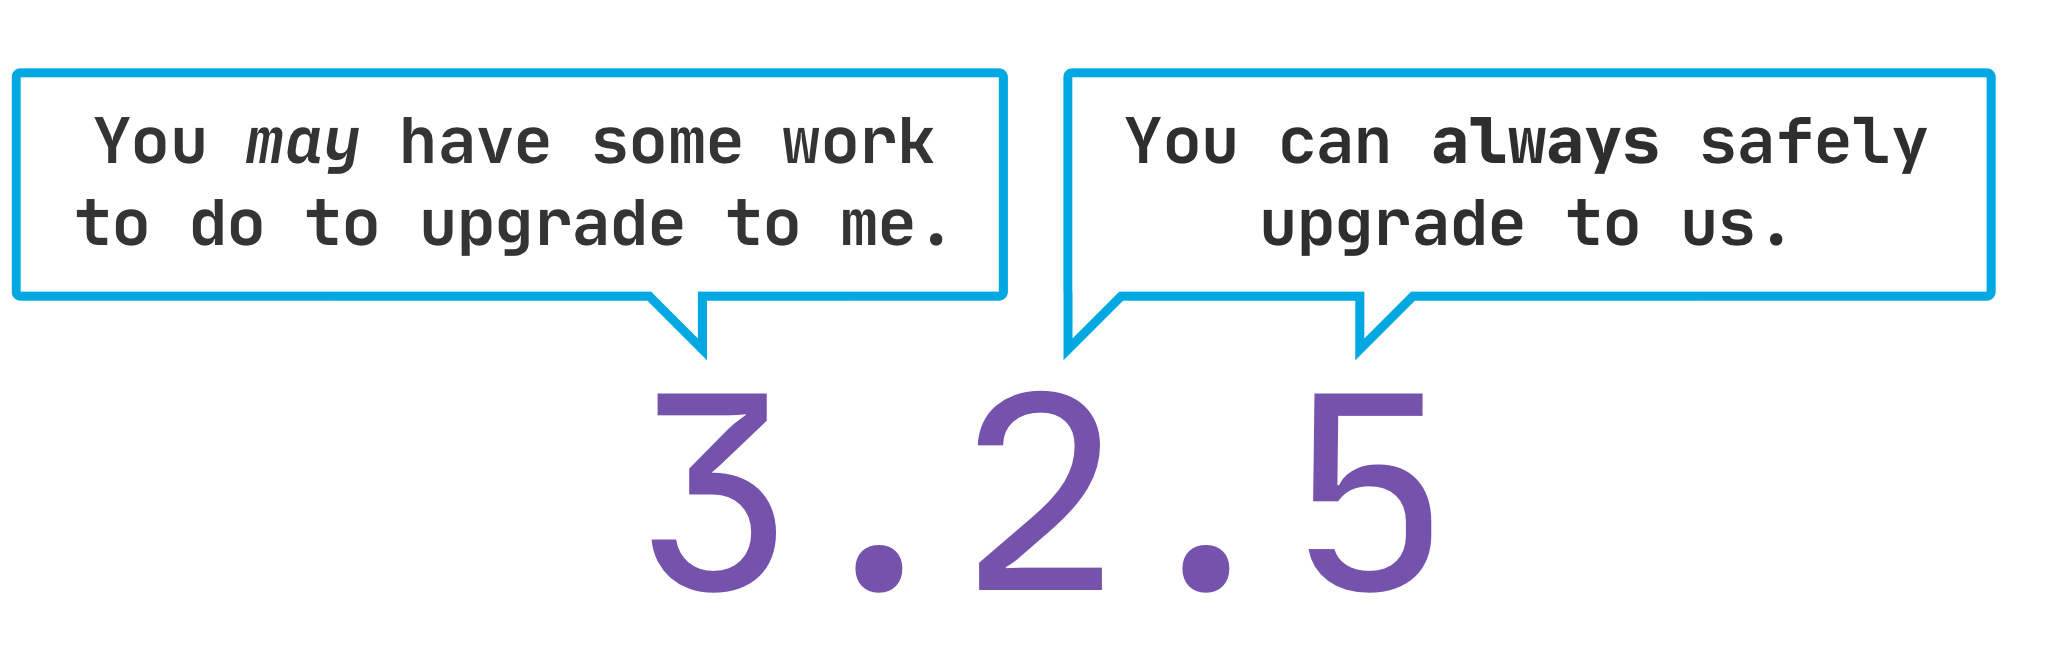 Illustration showing that patch and minor versions can be upgrade to safely, while major versions may require some work